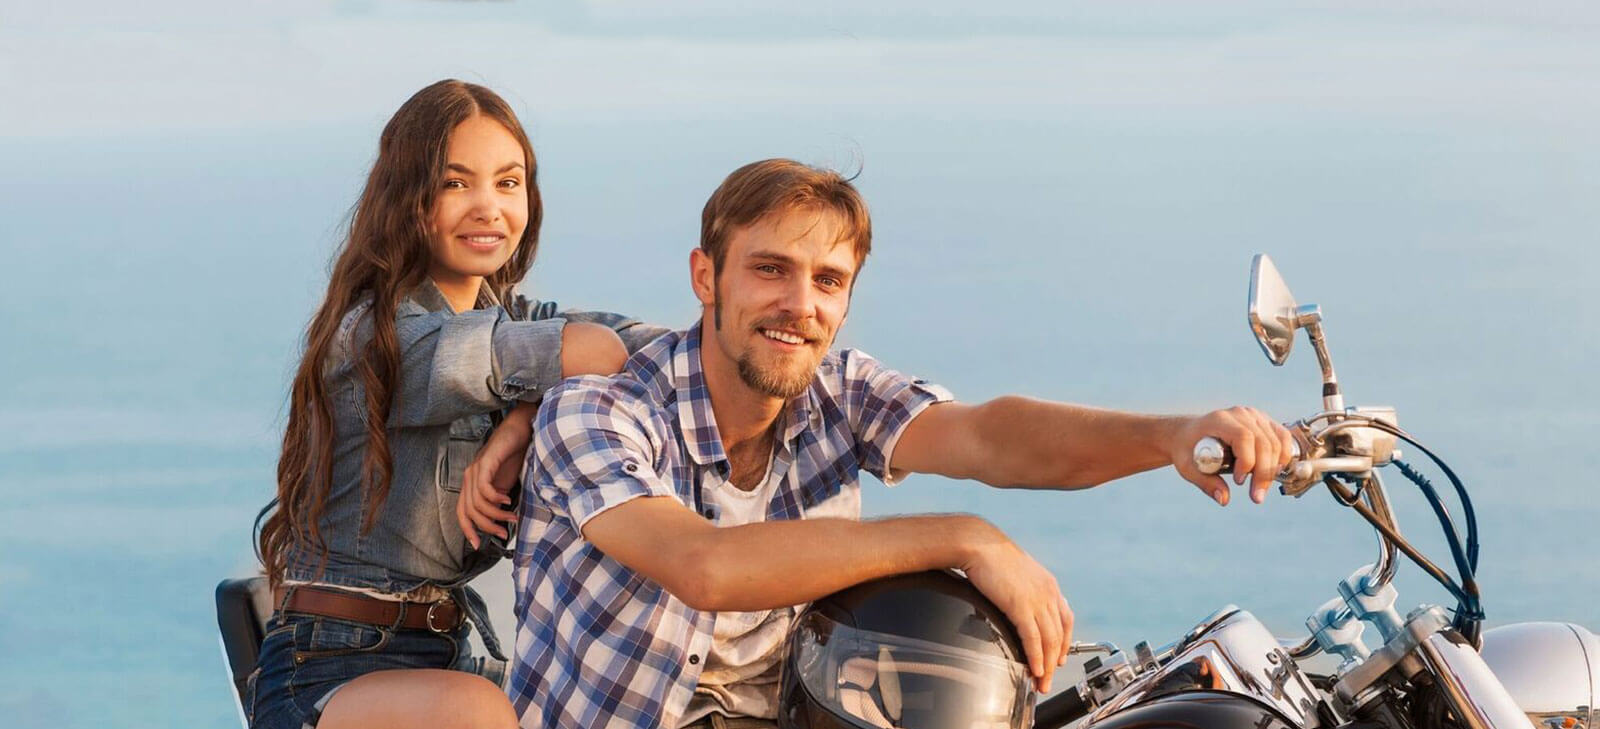 Motorcycle Insurance Options